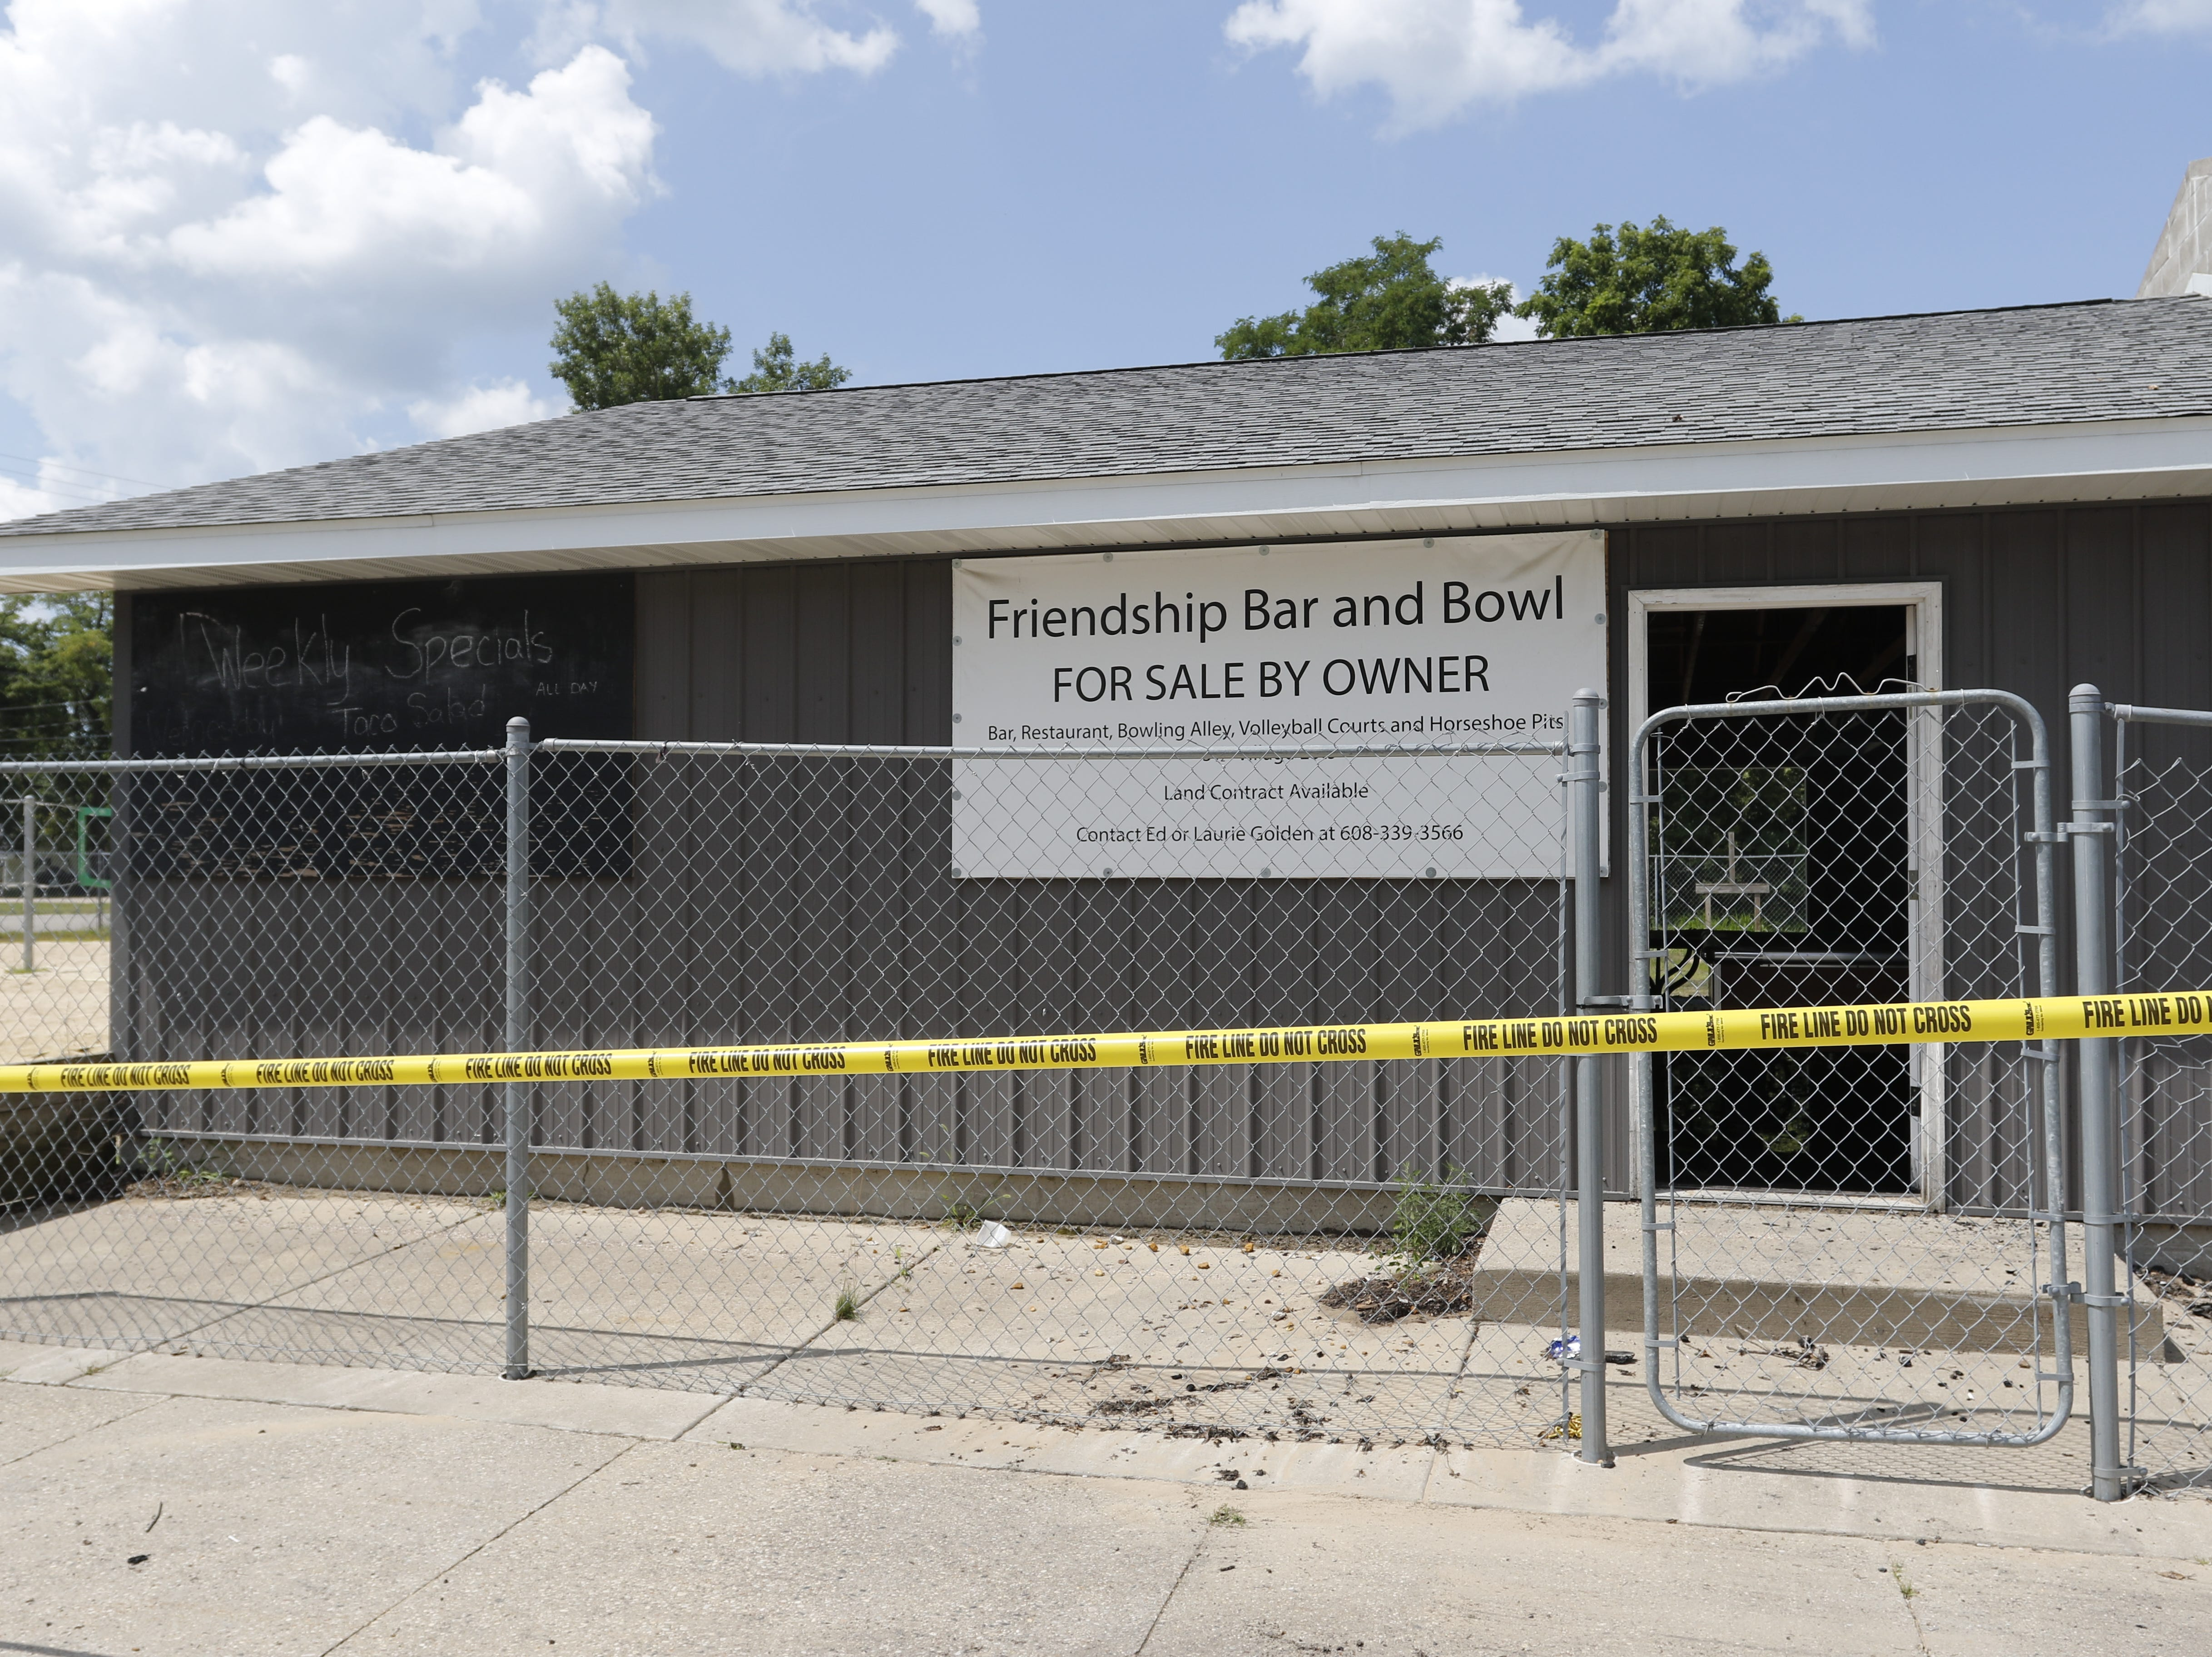 Friendship Bar and Bowl was for sale since October 2017 when a fire caused the local business to be a total loss Monday, August 30, 2018.